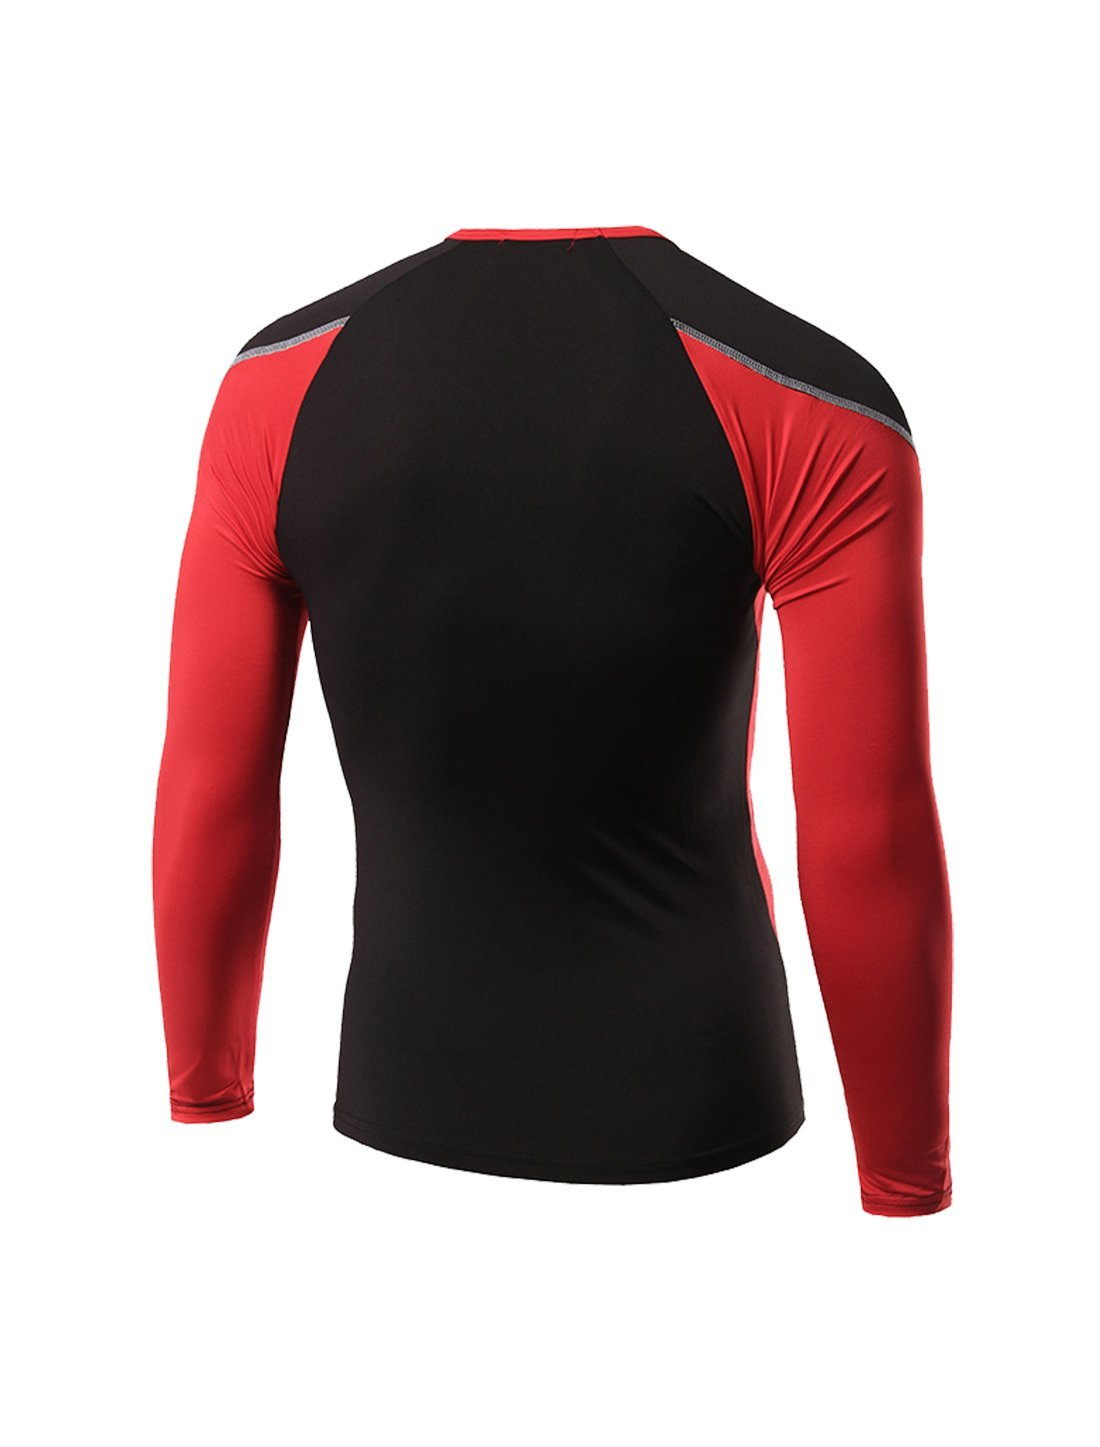 Amazon.com : eDealMax WHATLEES autorizado Color de Los Hombres-bloque Atlética compresión Camiseta del Deporte M Rojo : Sports & Outdoors